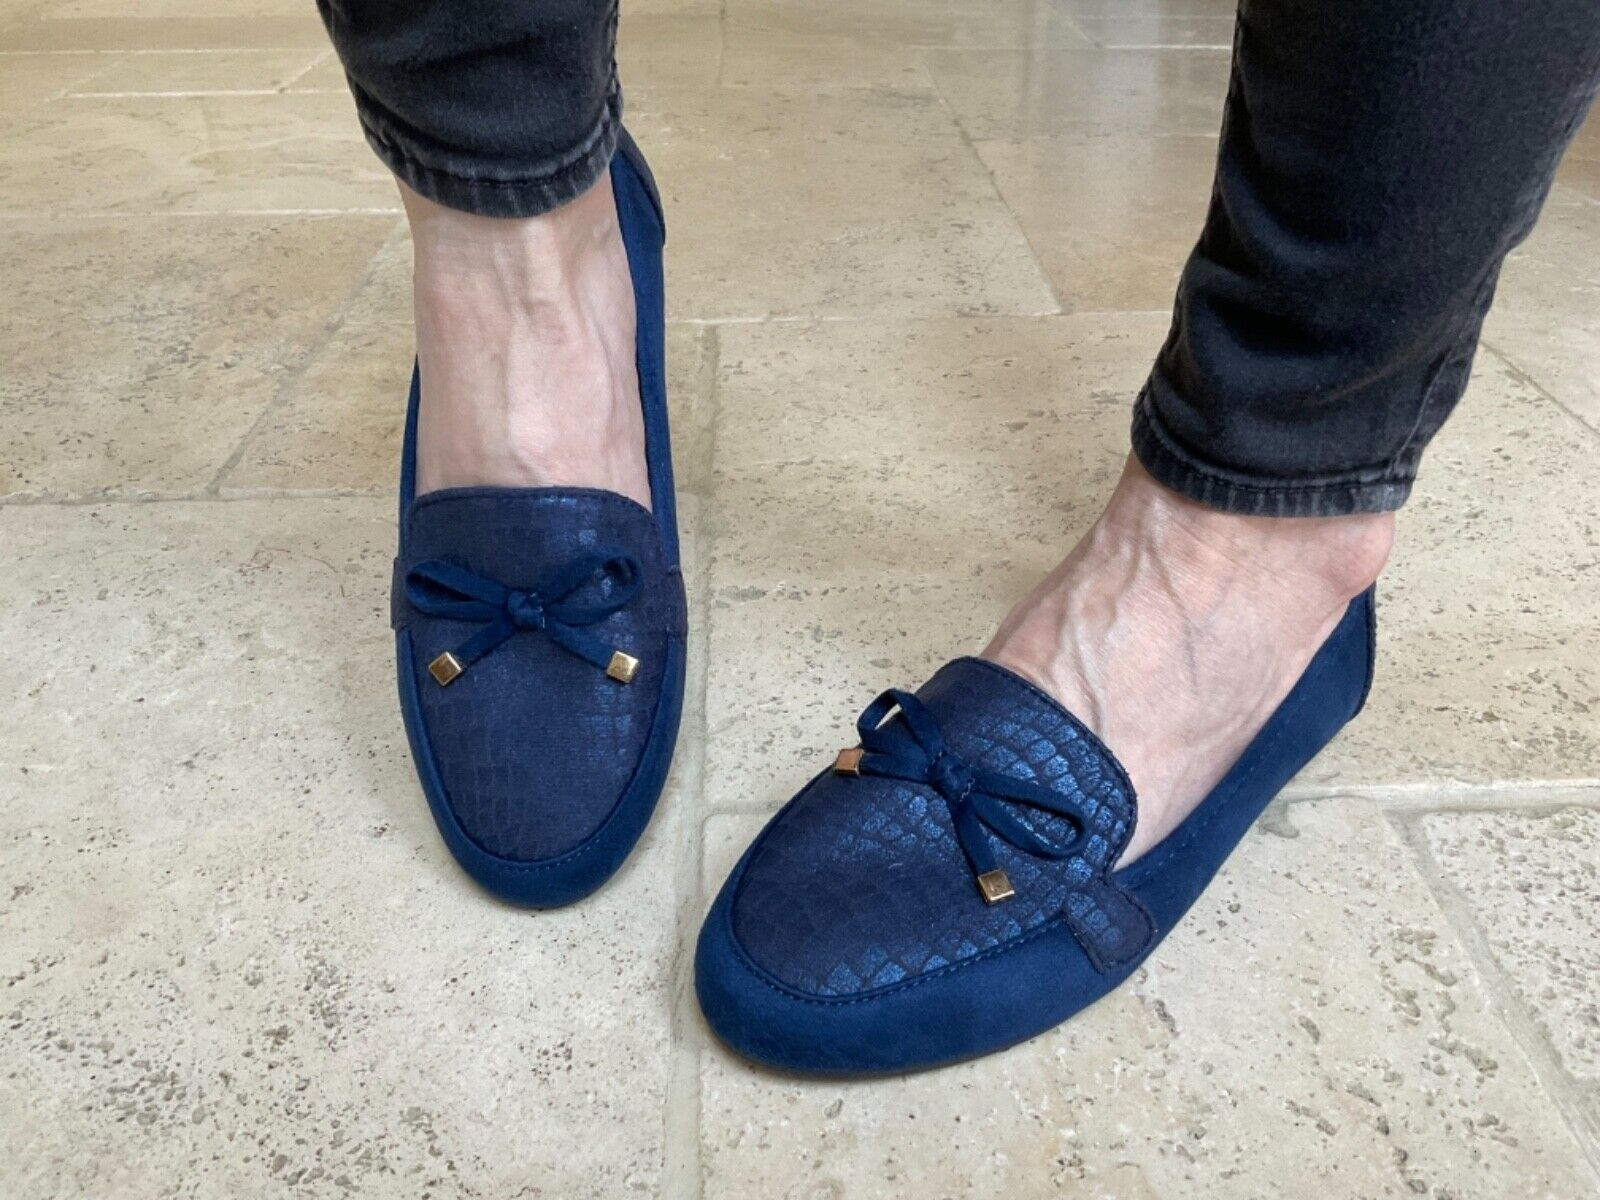 Womens Flat Party Shoes Work With Pretty Bow Detail Ladies - 9988-151 Blue